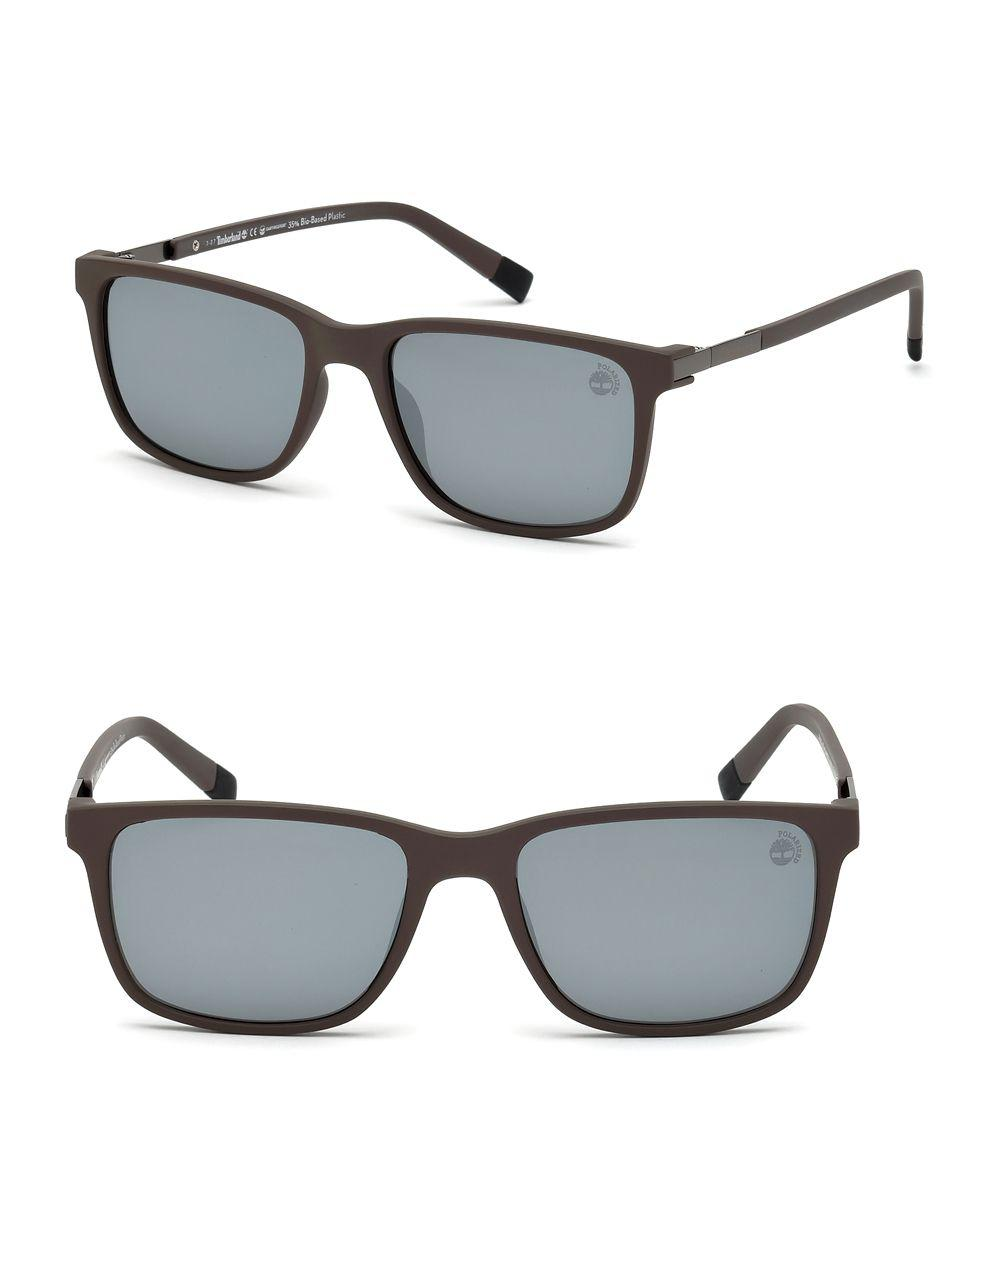 f621e271ef1 Lyst - Timberland Soft Square Sunglasses in Gray for Men